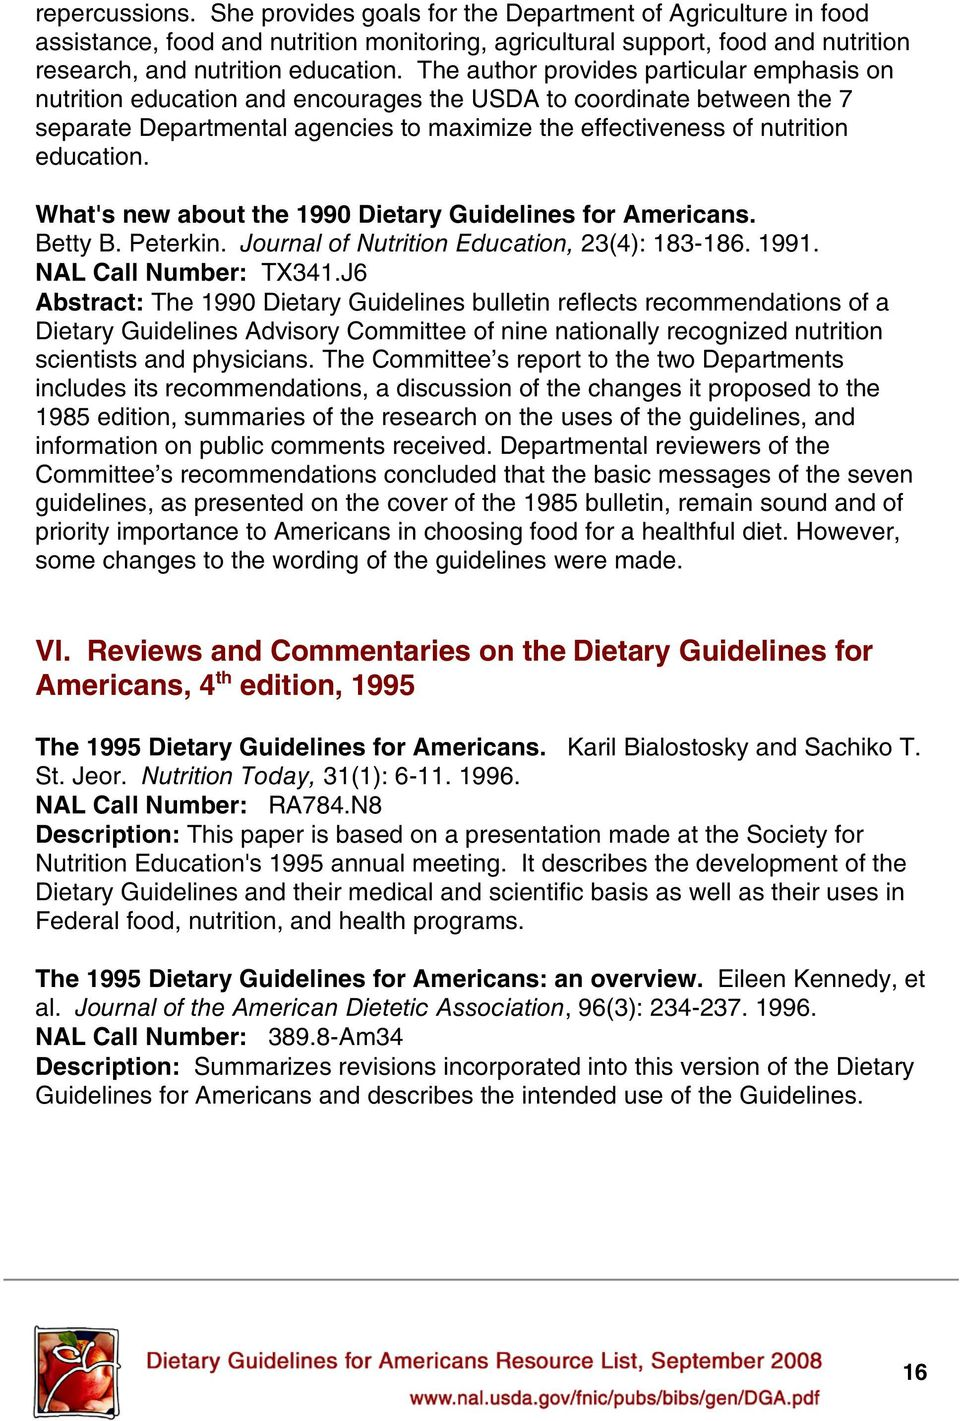 What's new about the 1990 Dietary Guidelines for Americans. Betty B. Peterkin. Journal of Nutrition Education, 23(4): 183-186. 1991. NAL Call Number: TX341.